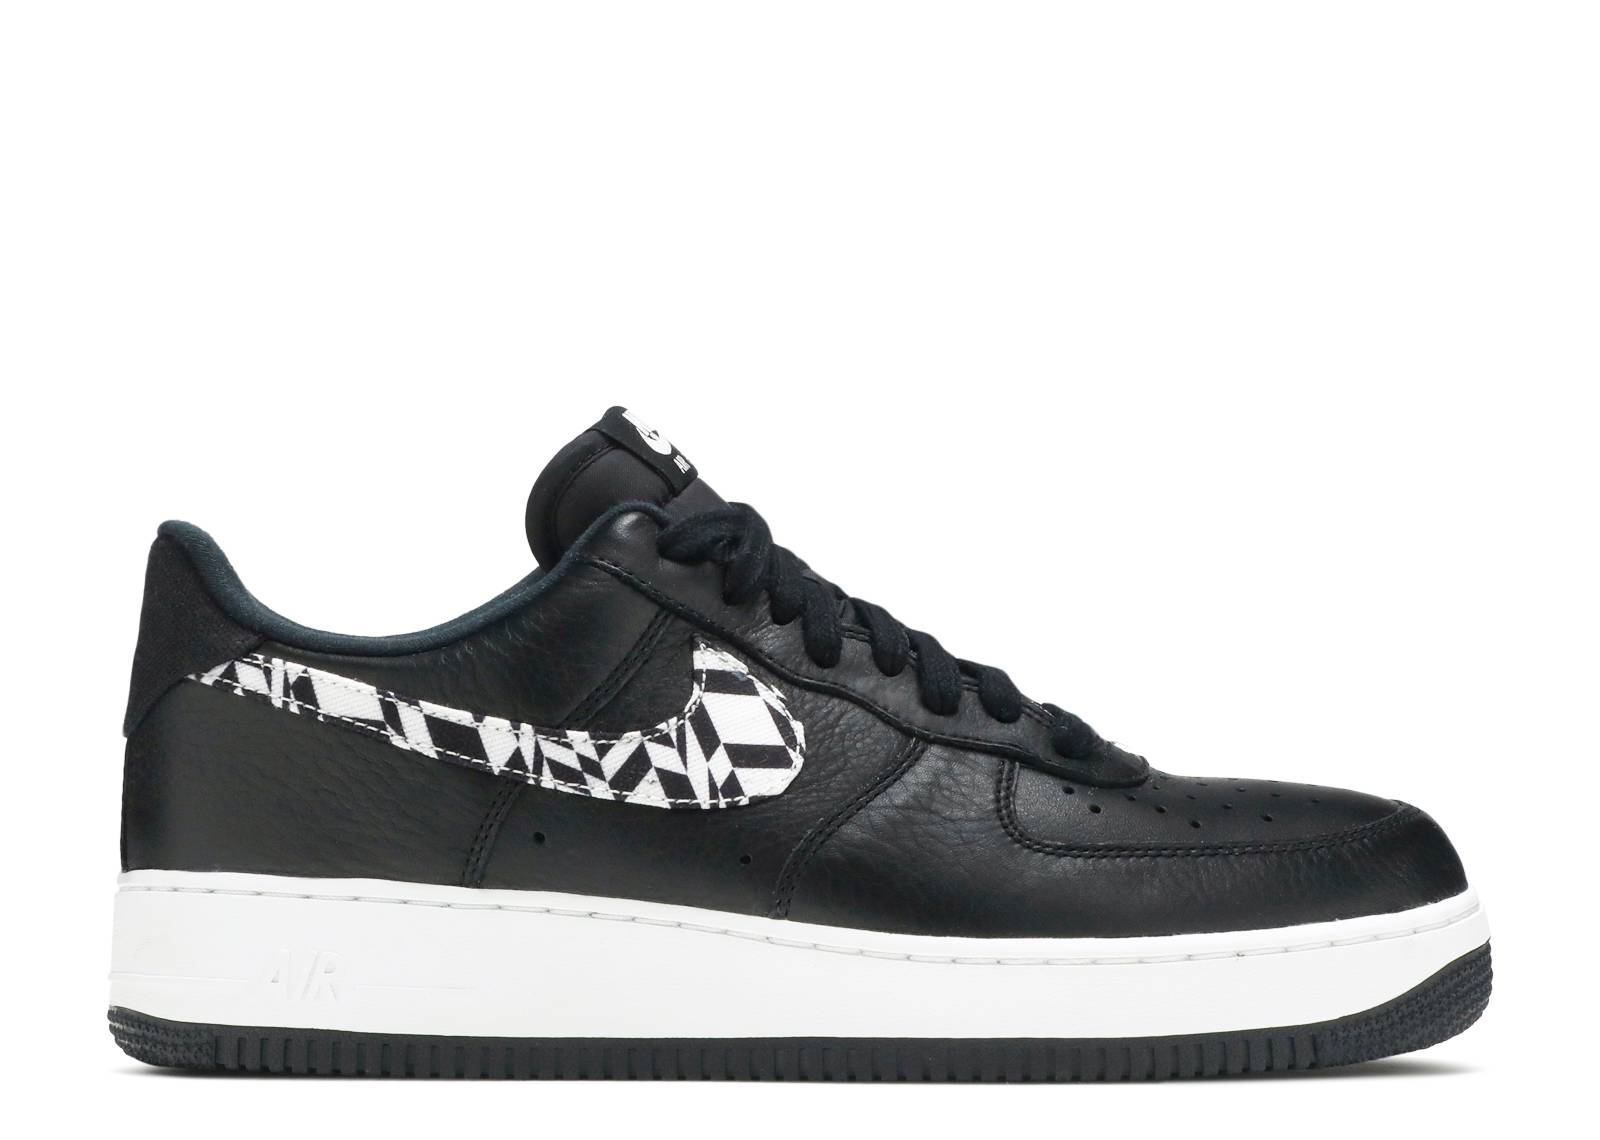 "Air Force 1 Low 'Tiger Camo Black' ""Tiger Camo Black"""